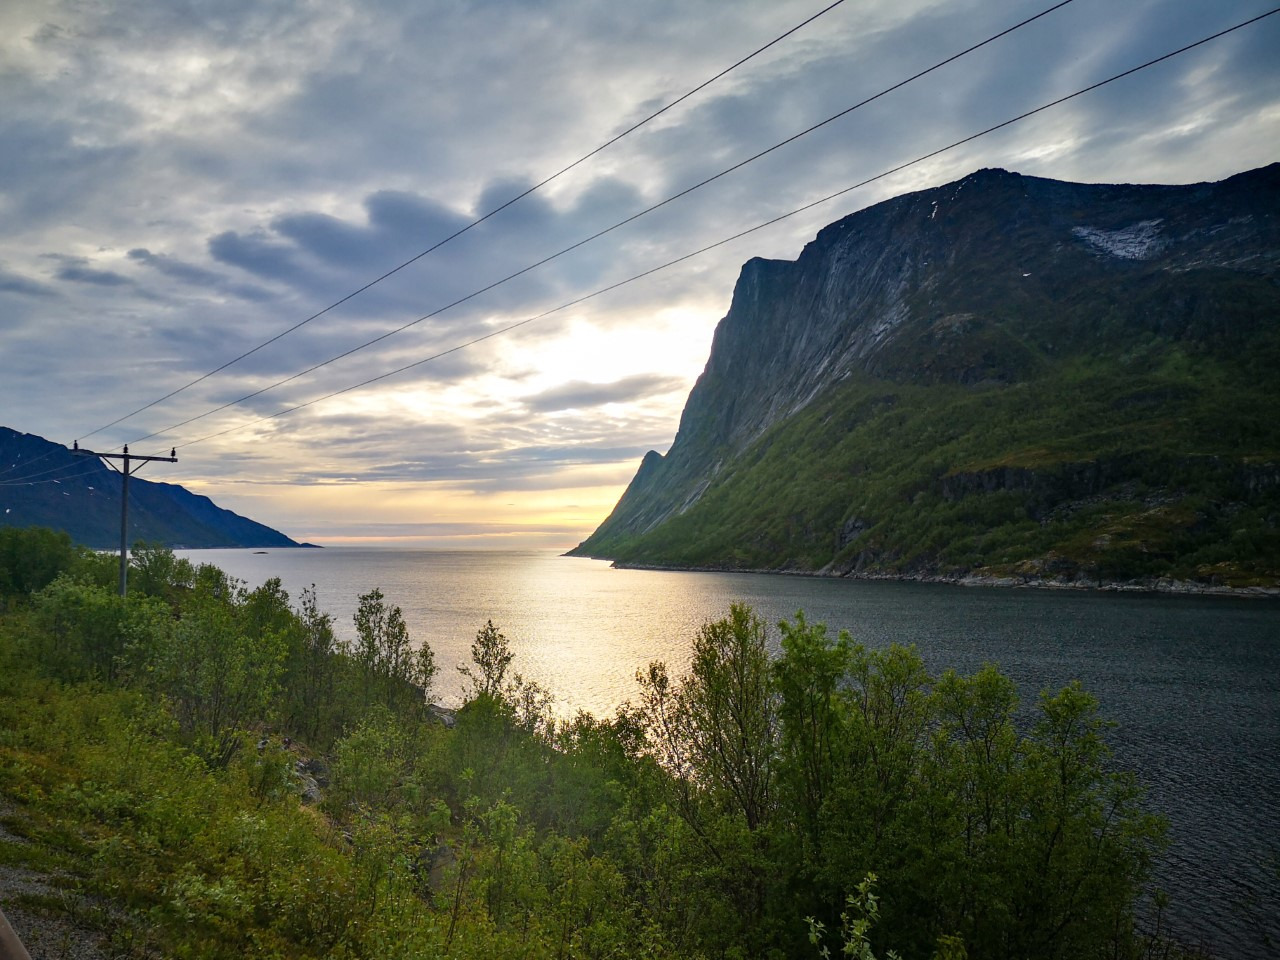 Senja, Norway - Cycling along the edge of a fjord